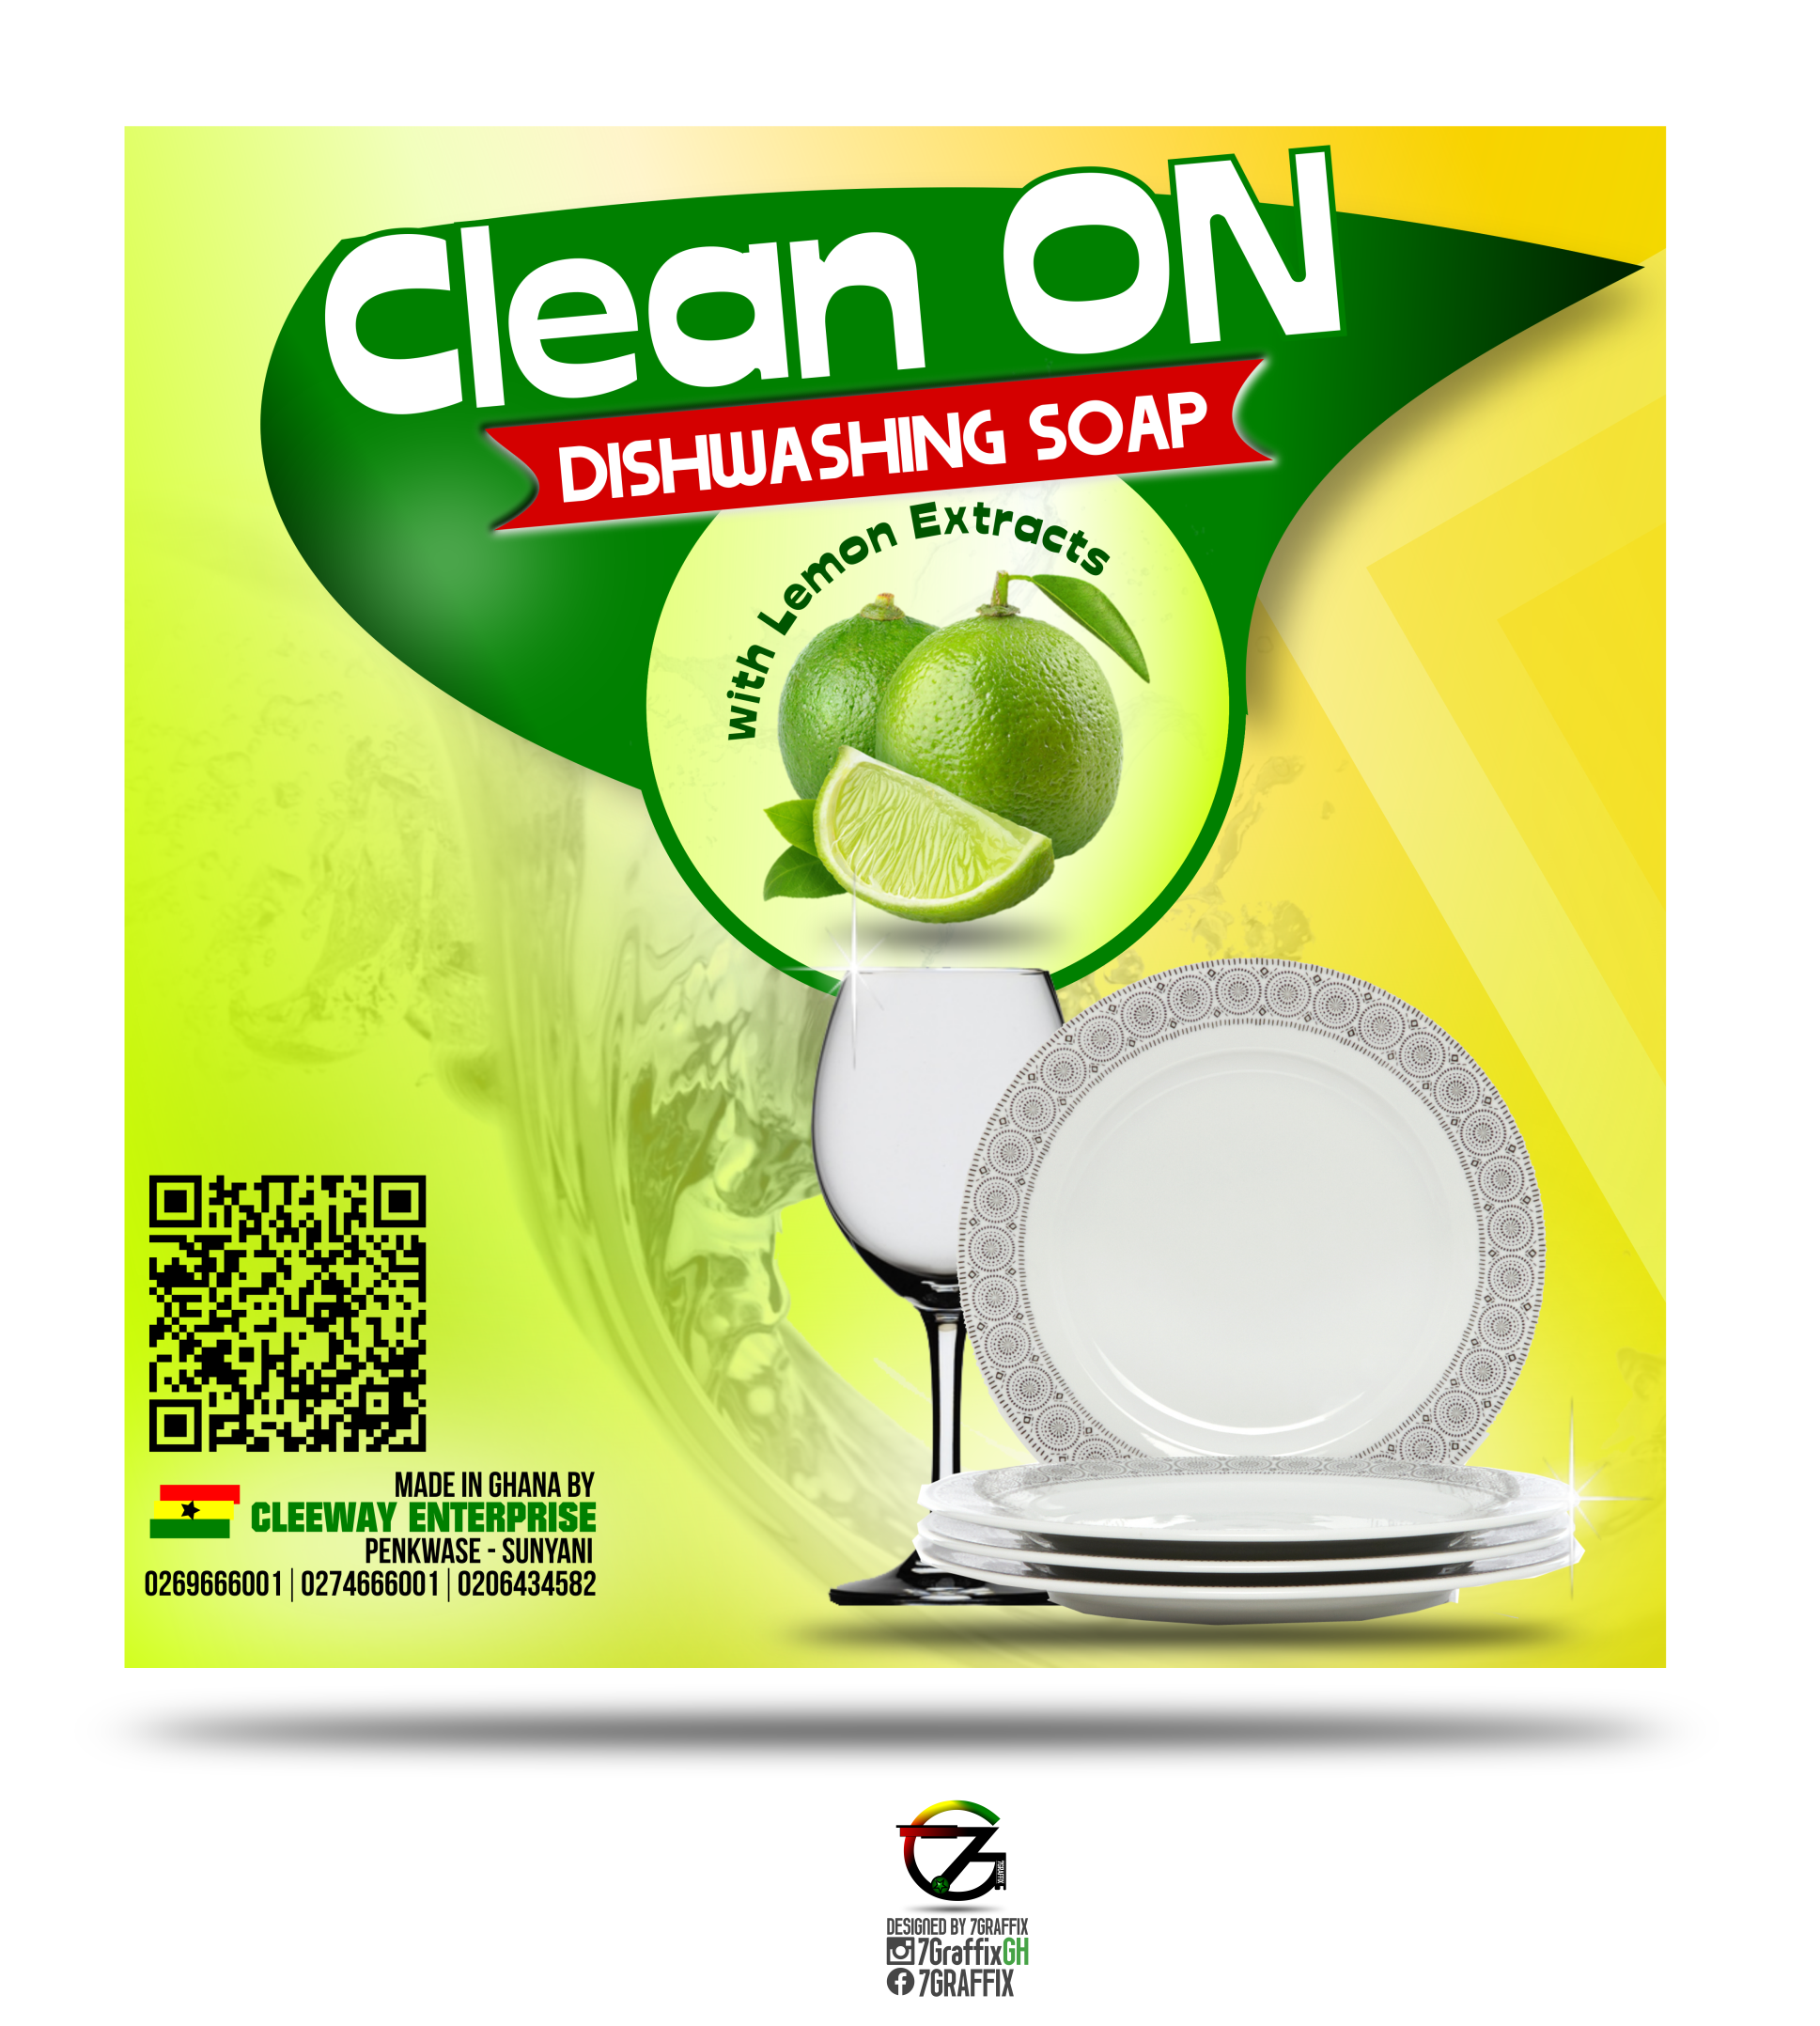 CLEAN ON DISHWASHING SOAP PRODUCT LABEL DESIGN (BY